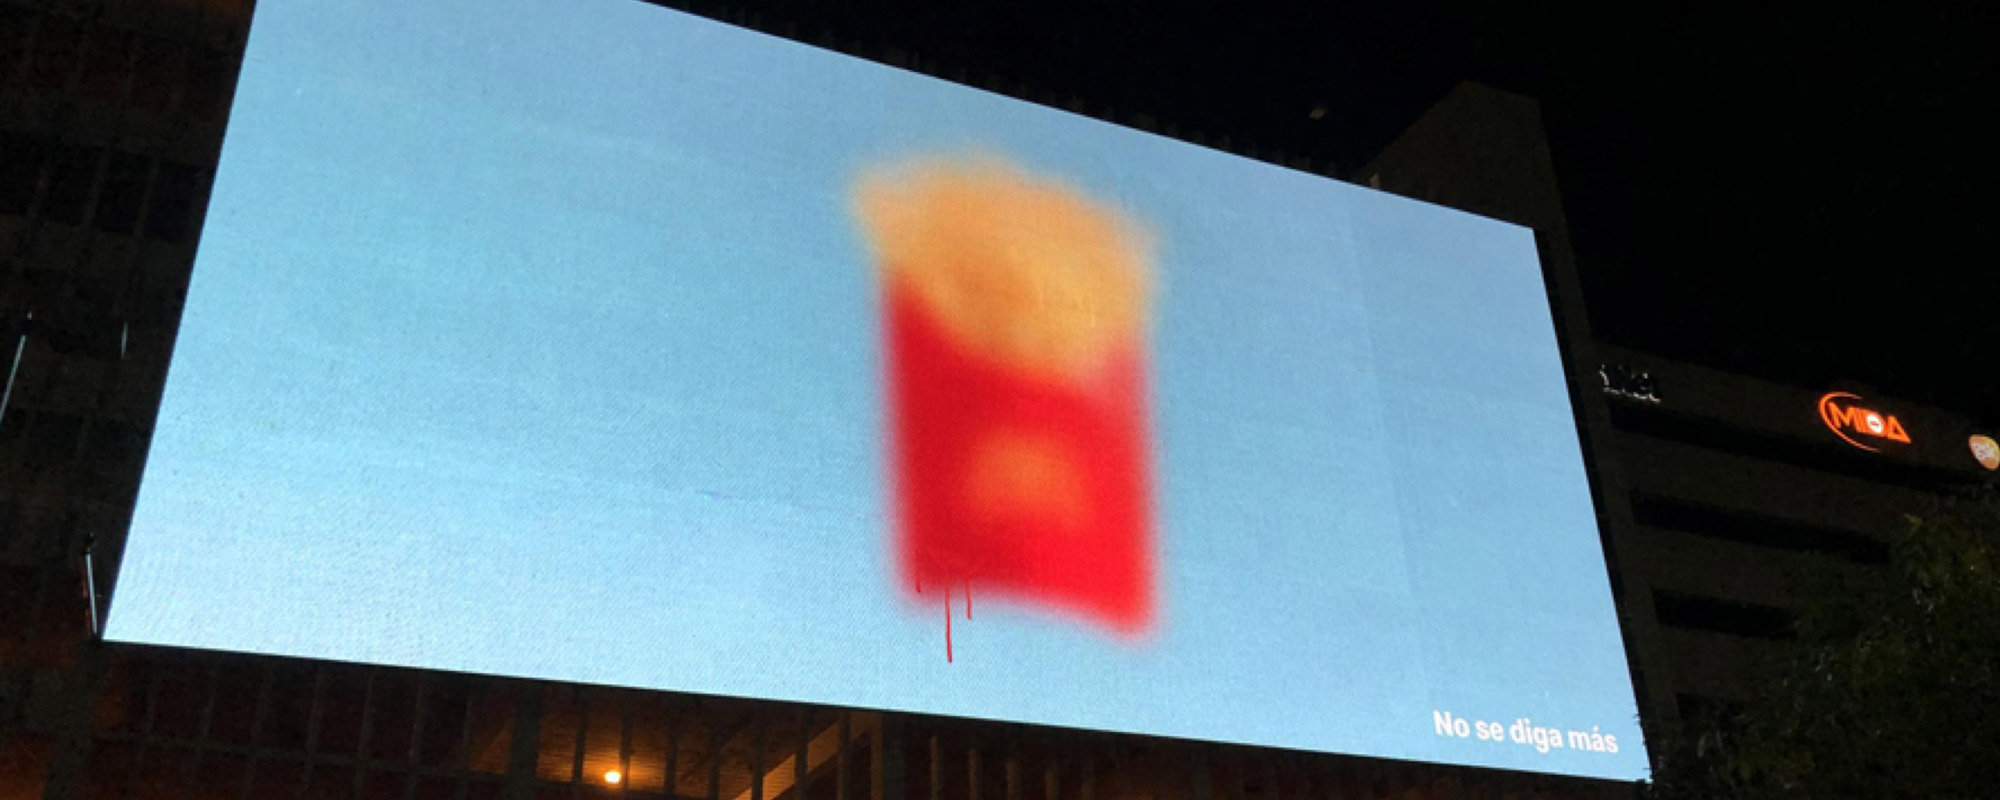 MacDonalds blurry billboards - blurred out chips